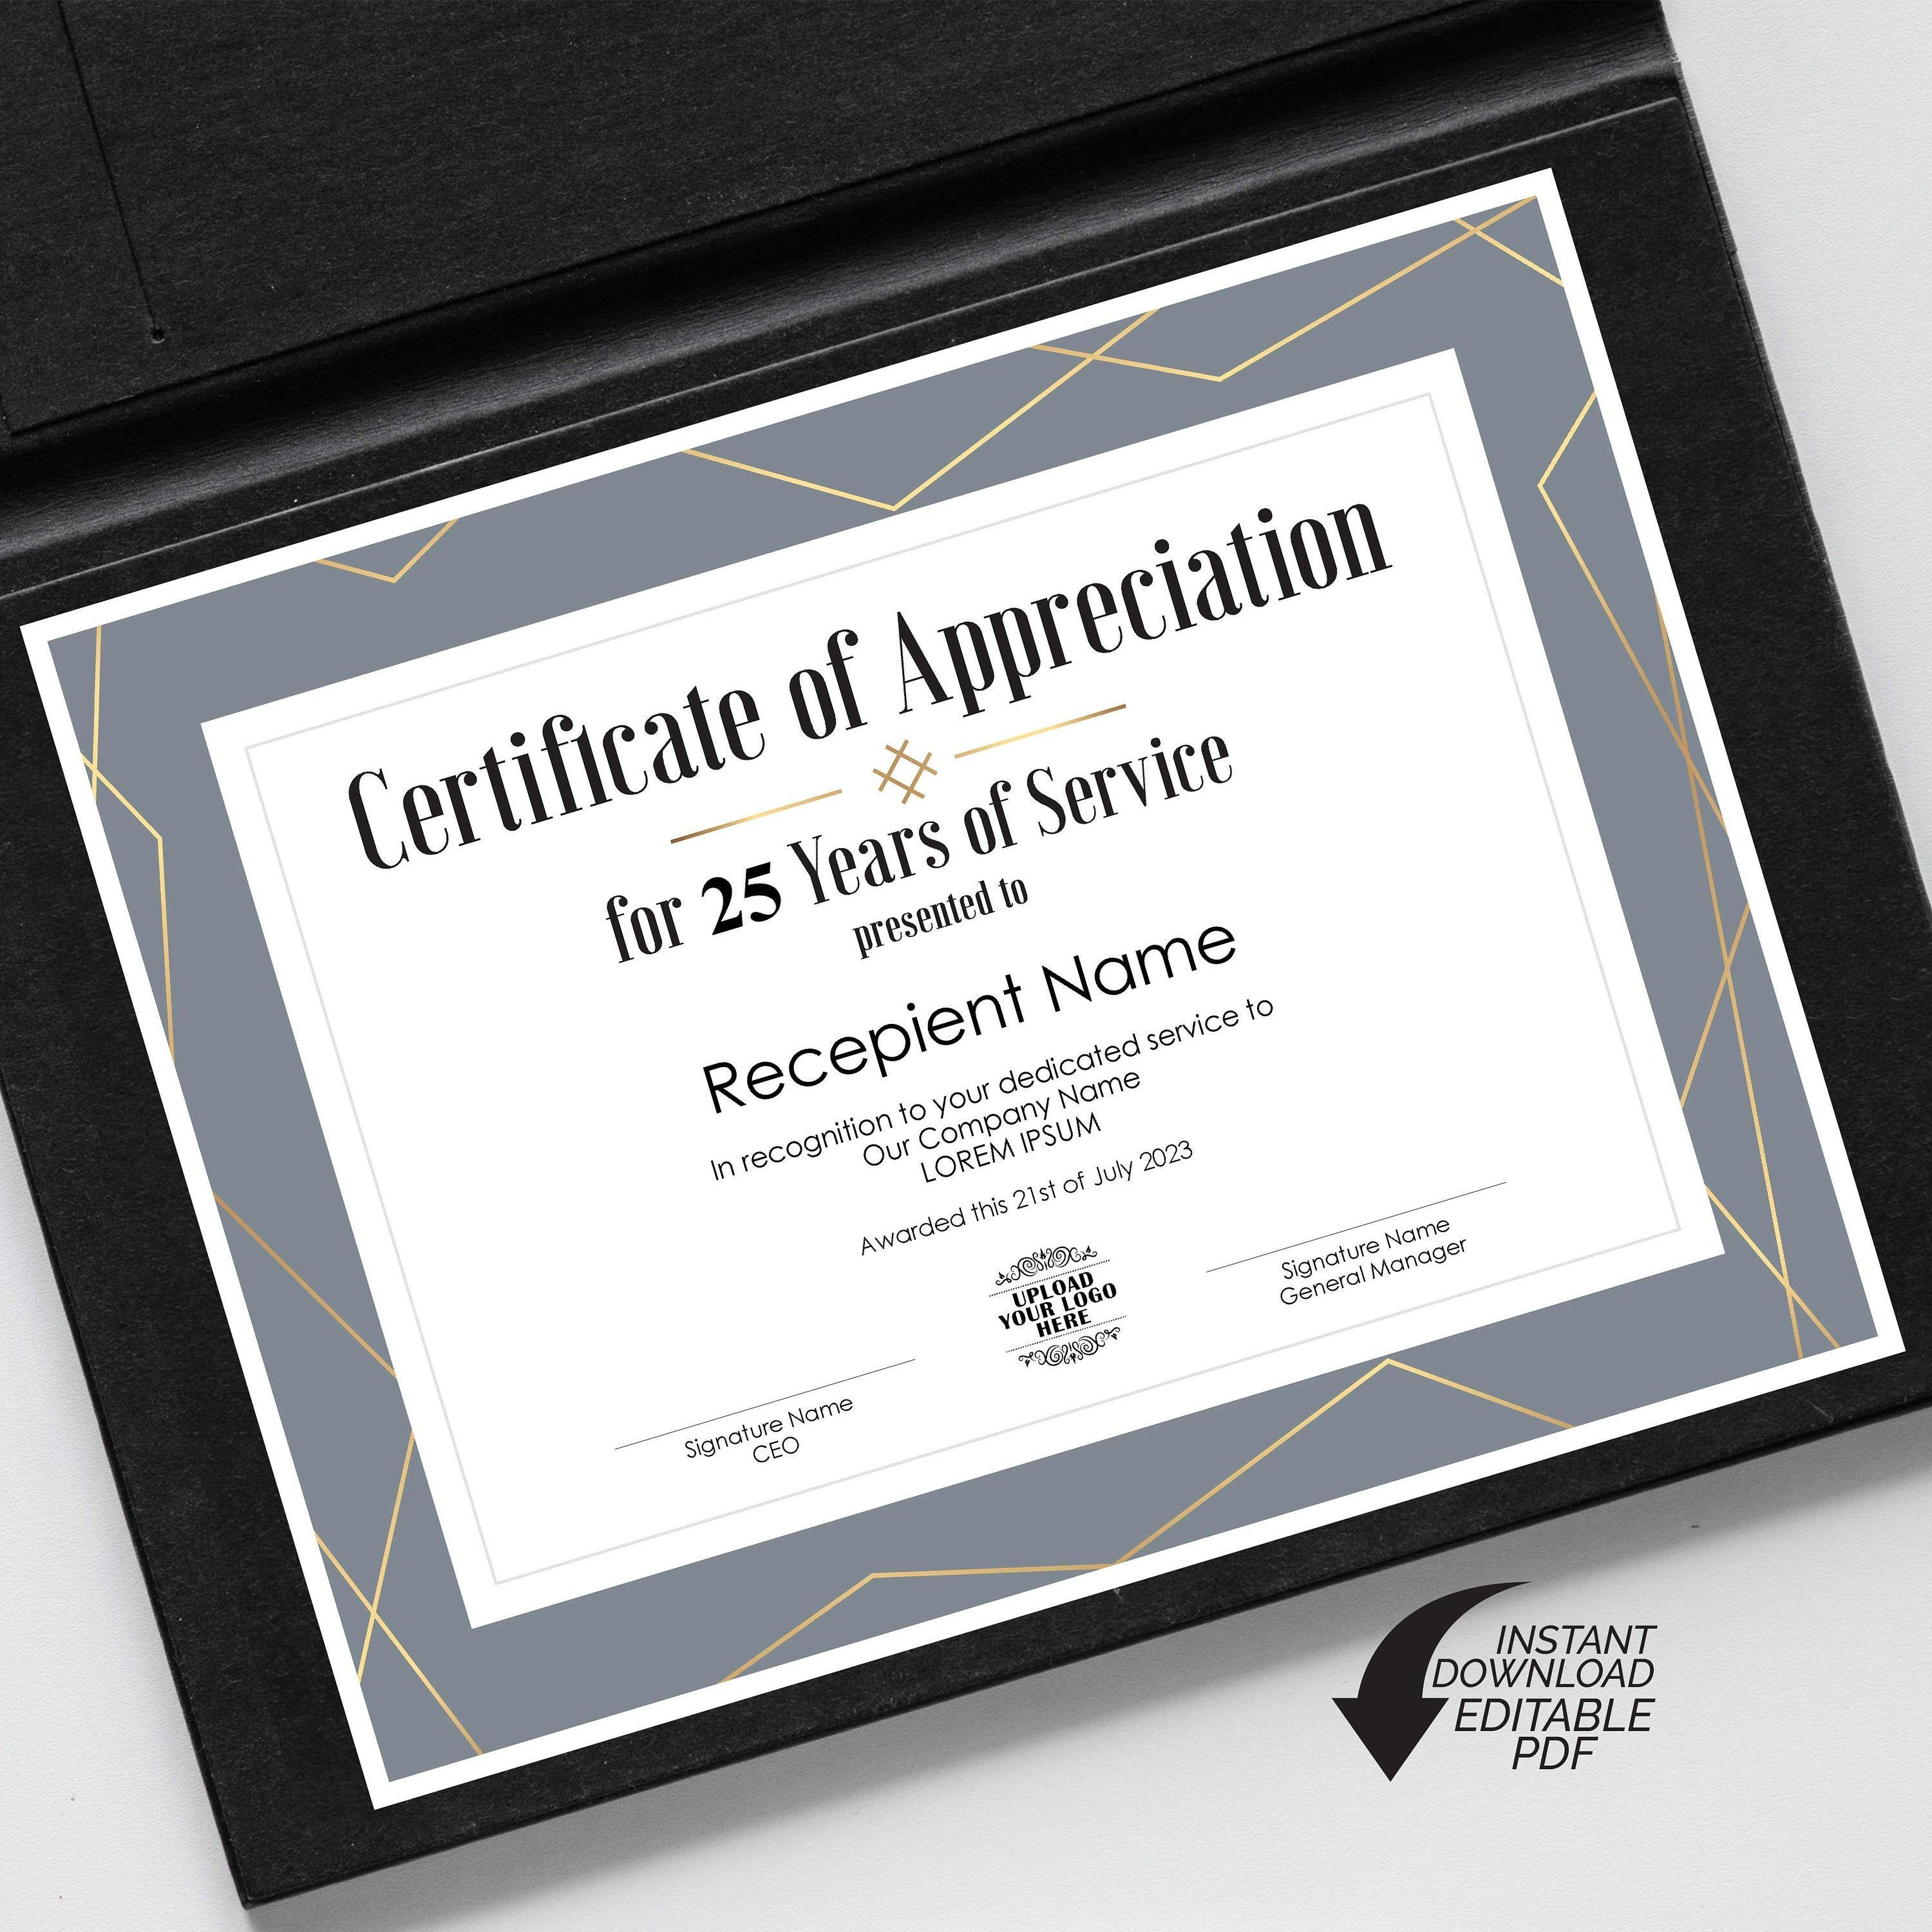 Editable Years Of Service Certificate Of Appreciation Etsy In 2021 Editable Certificates Certificate Of Appreciation Certificate Certificates for years of service